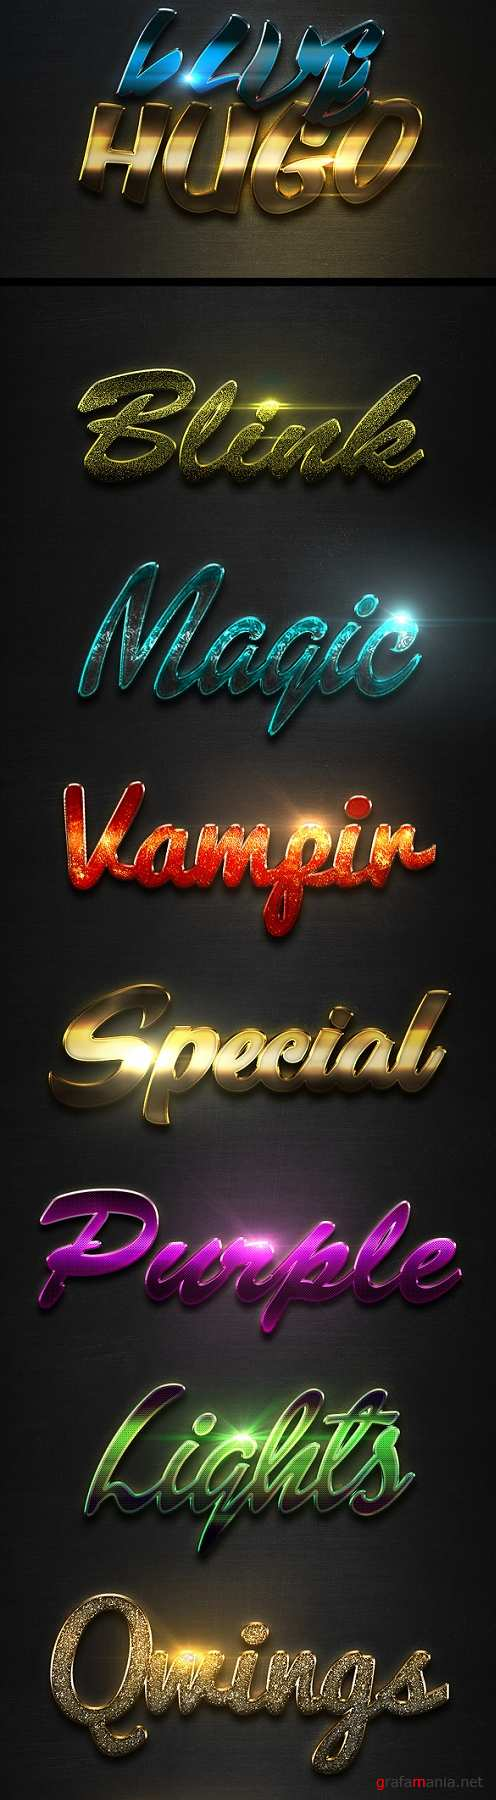 10 Creative Text Effects Vol.3 - 20994151